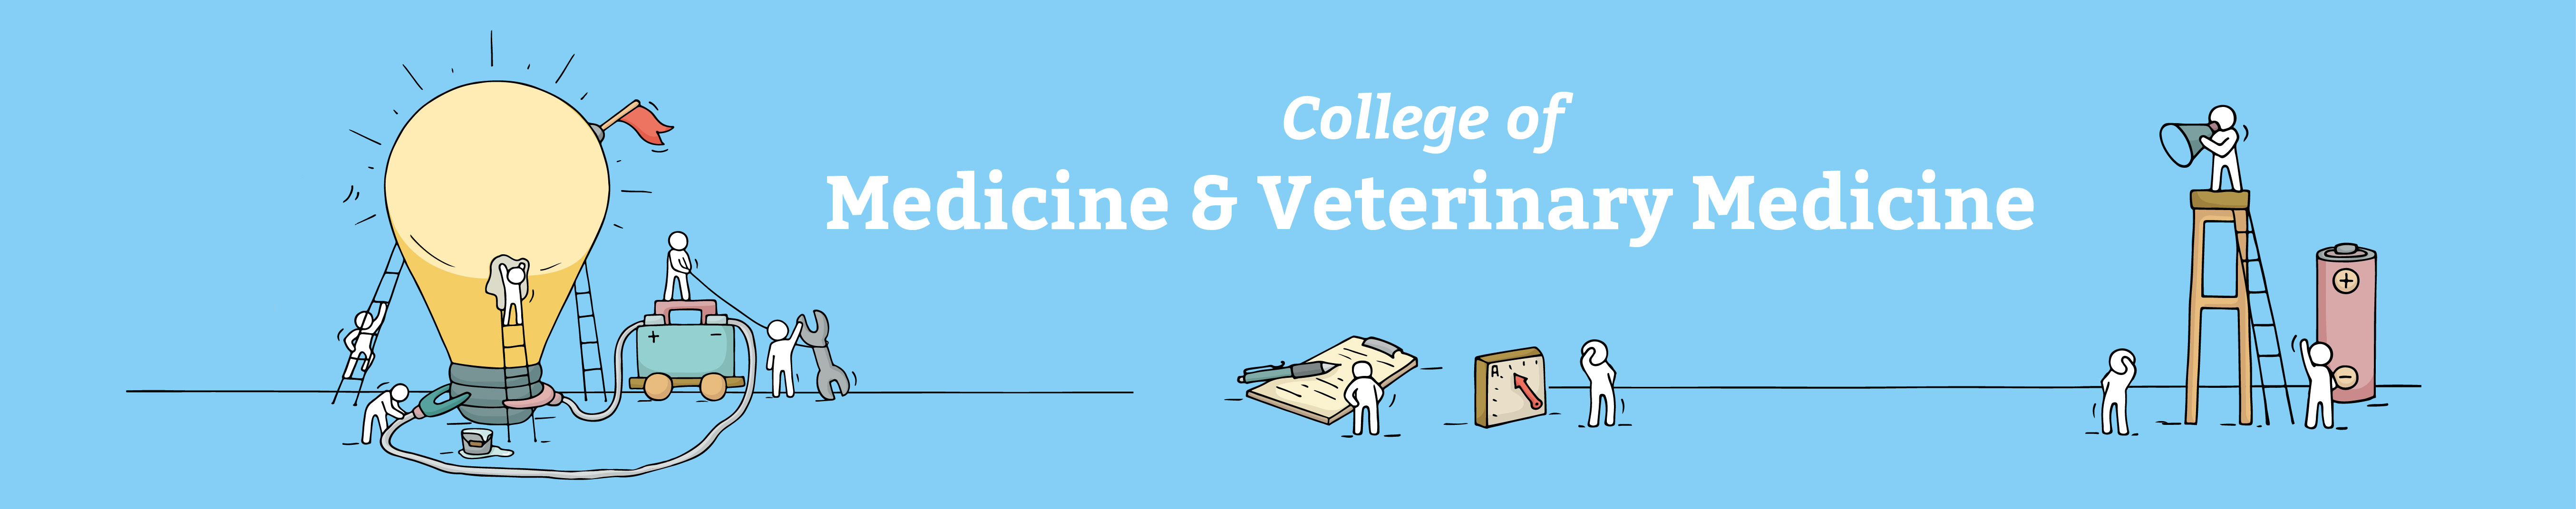 College of Medicine & Veterinary Medicine